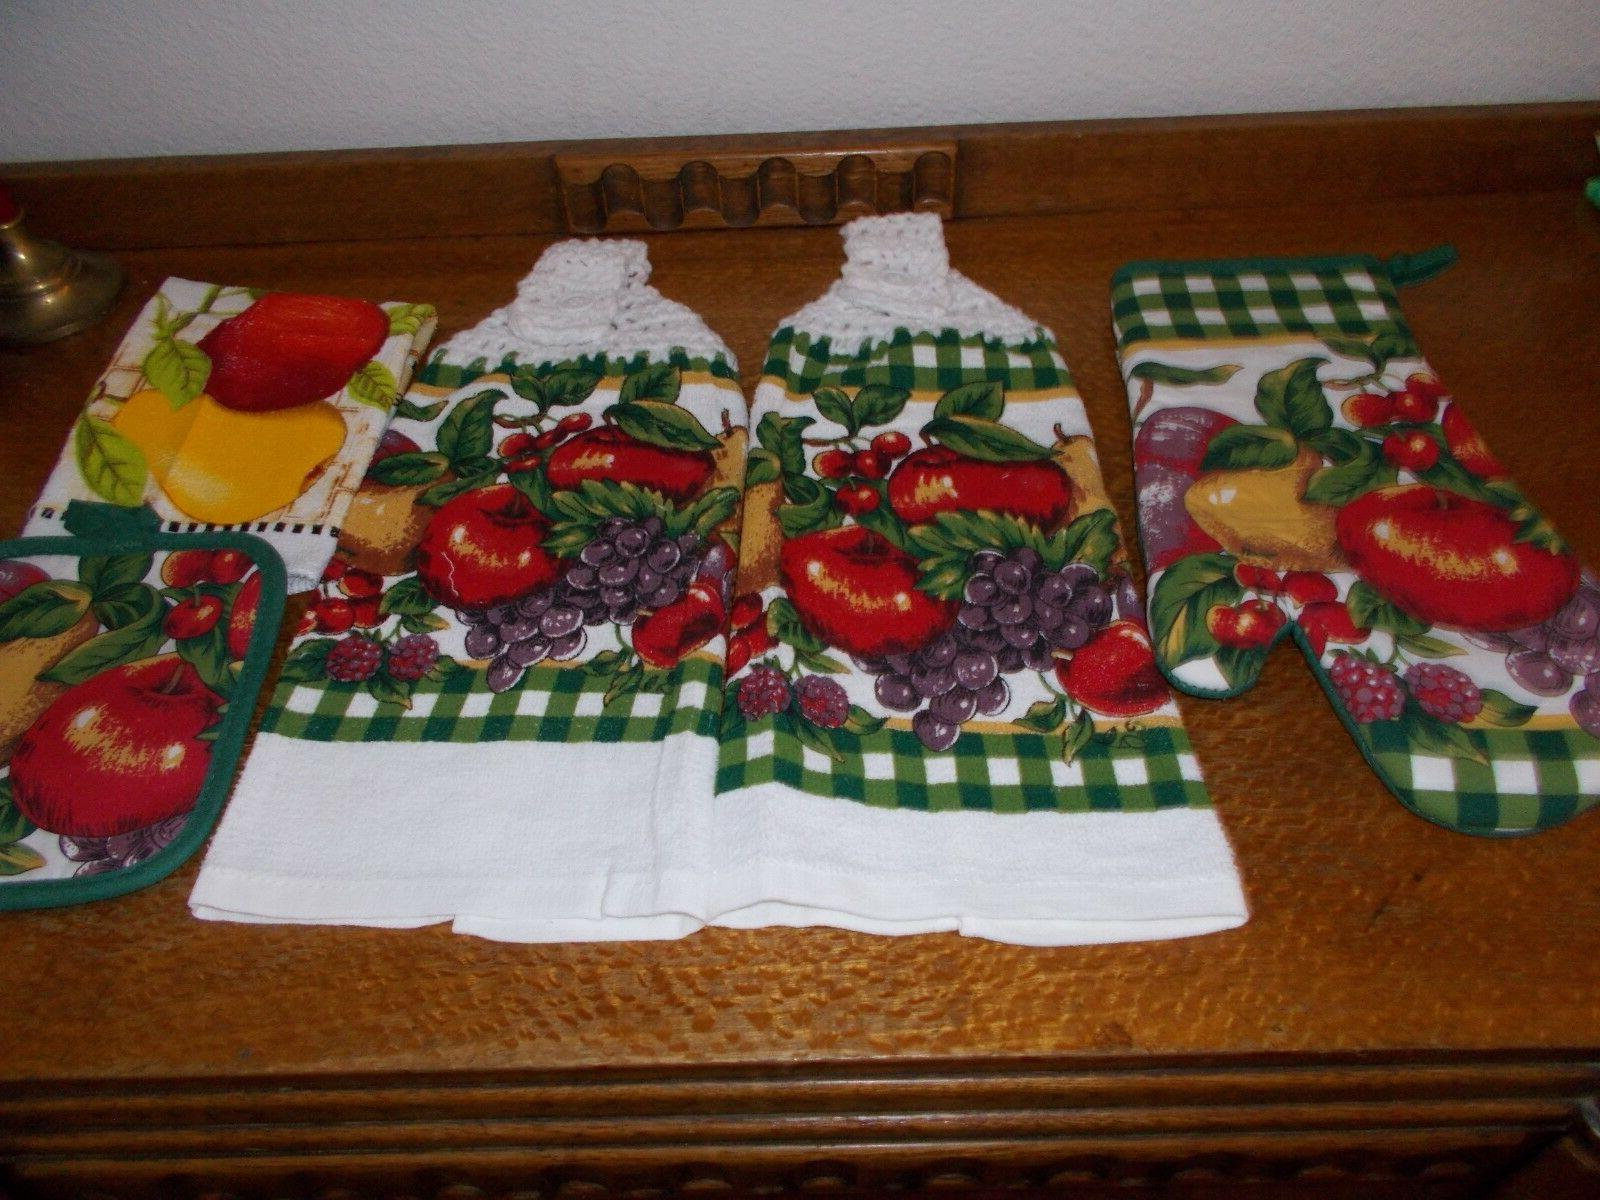 5 pc-HANGING KITCHEN TOWEL SET, CROCHET TOPS Red & Yellow ap